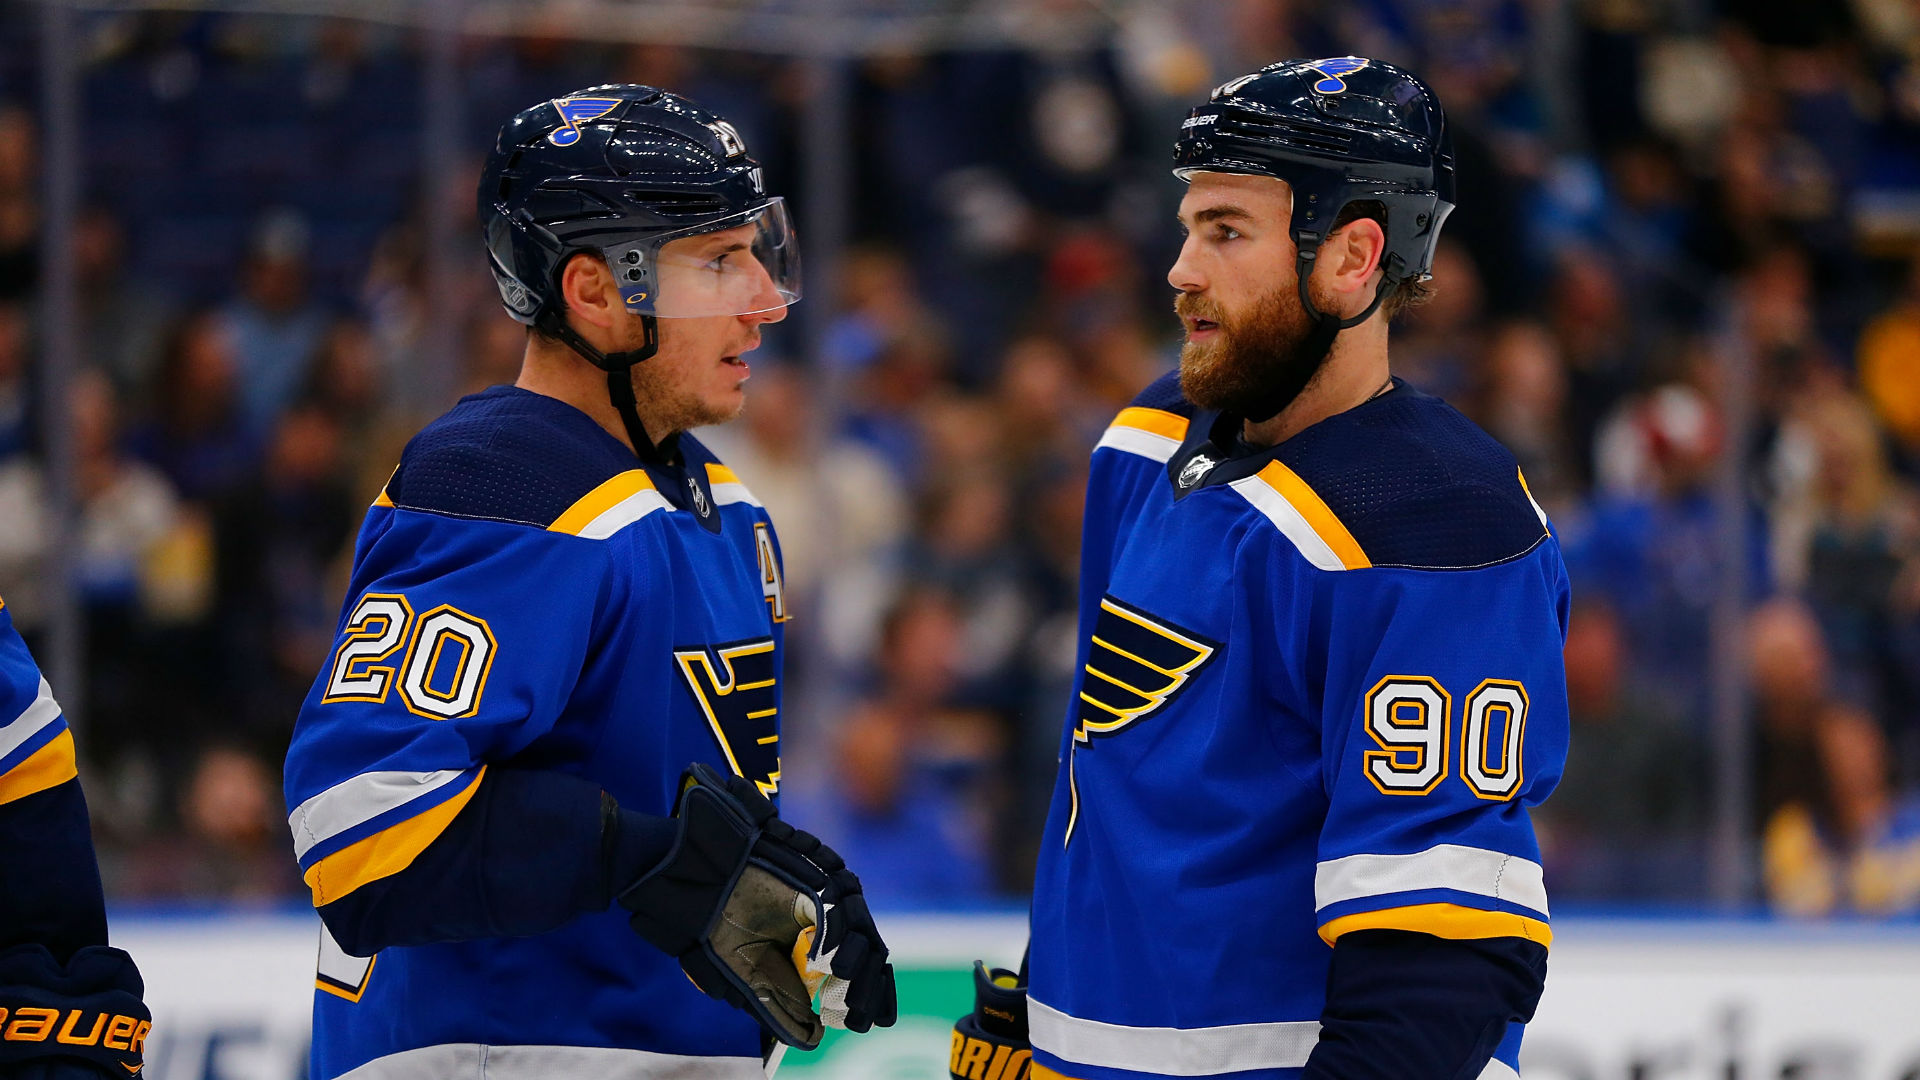 Blues Veteran Ryan O'Reilly Scores First Career Hat Trick